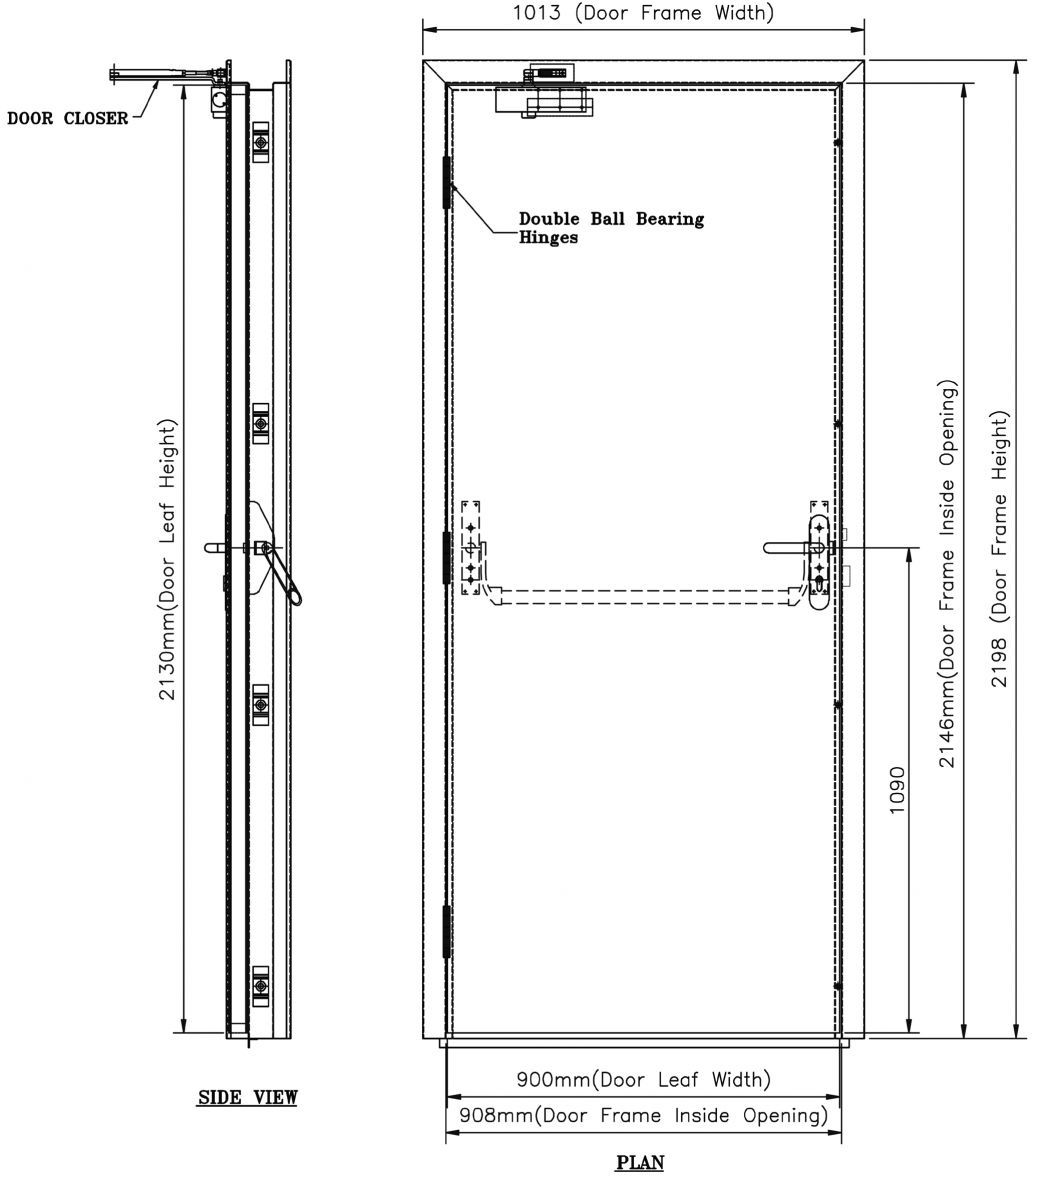 open double door drawing. METAL GLASS DOOR Dwg - Google 검색 Open Double Door Drawing